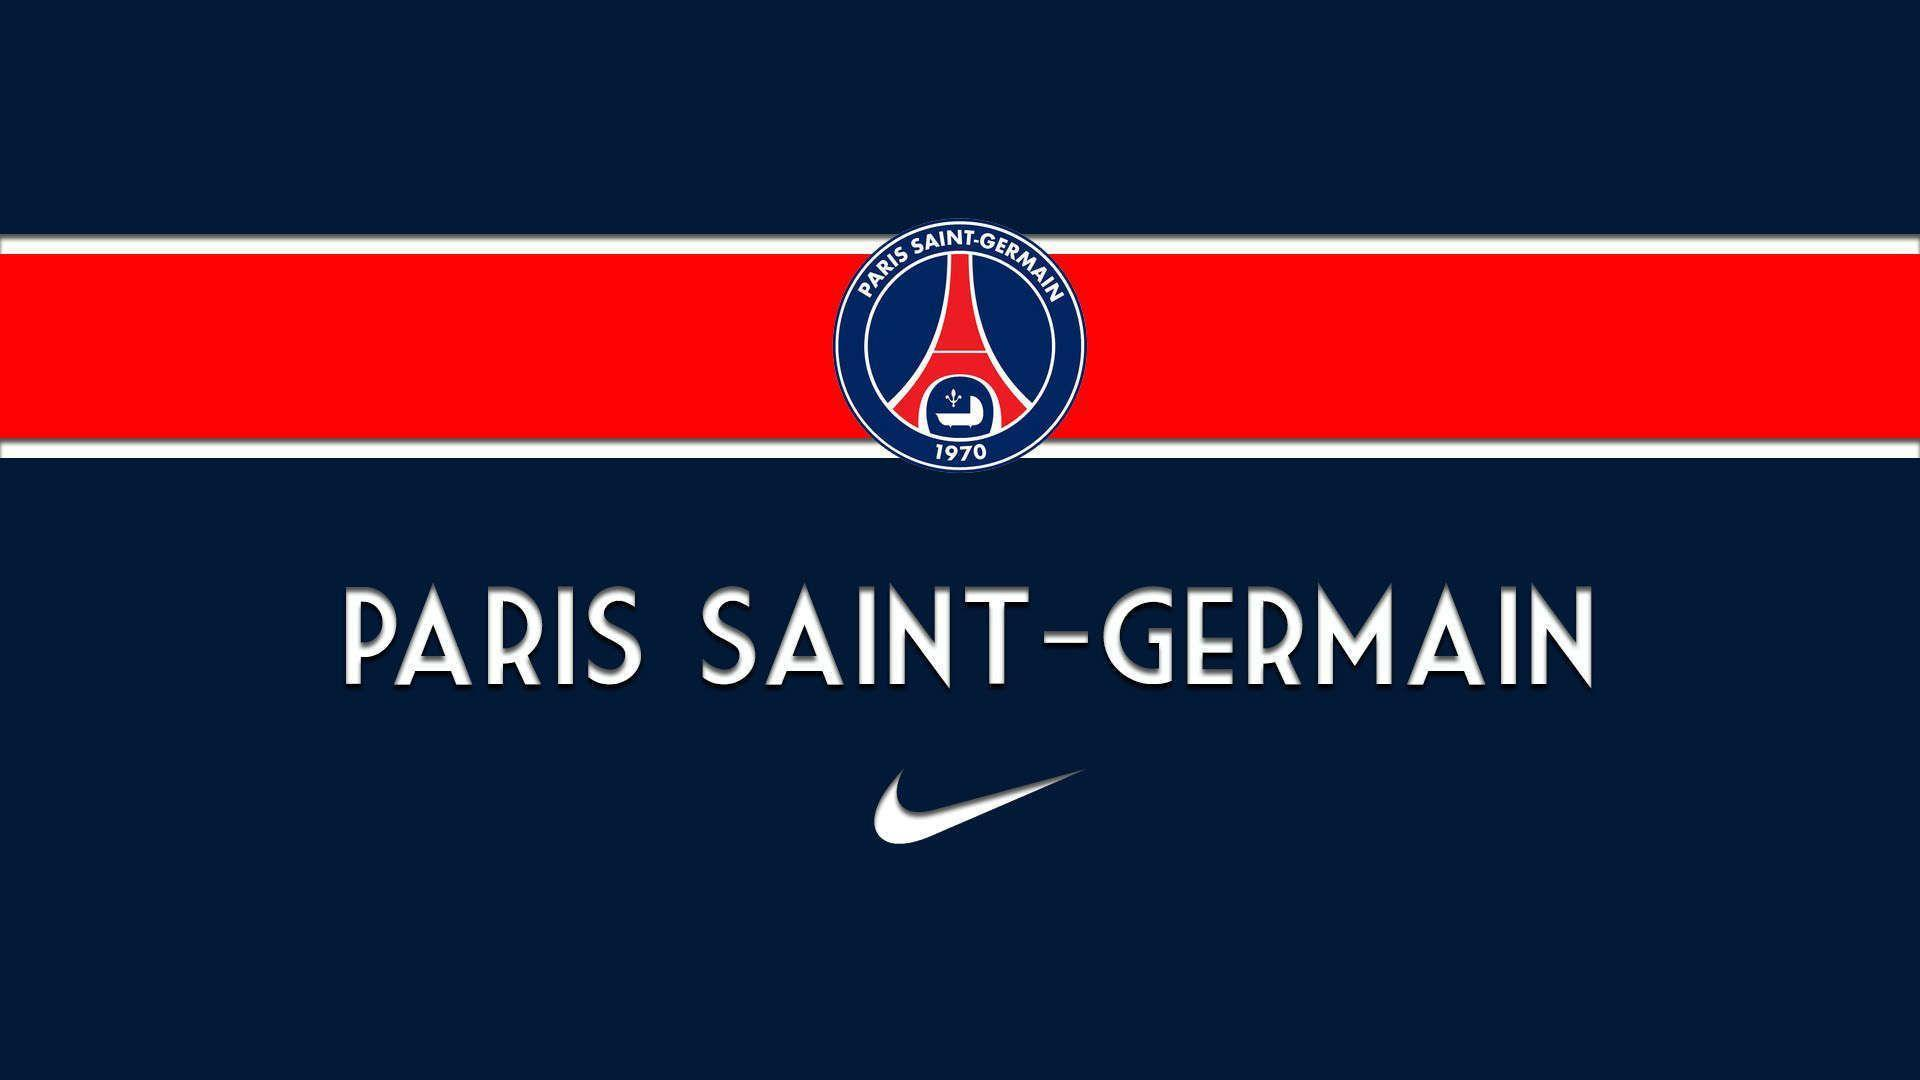 Psg Hd Wallpapers New Tab Theme Sports Fan Tab